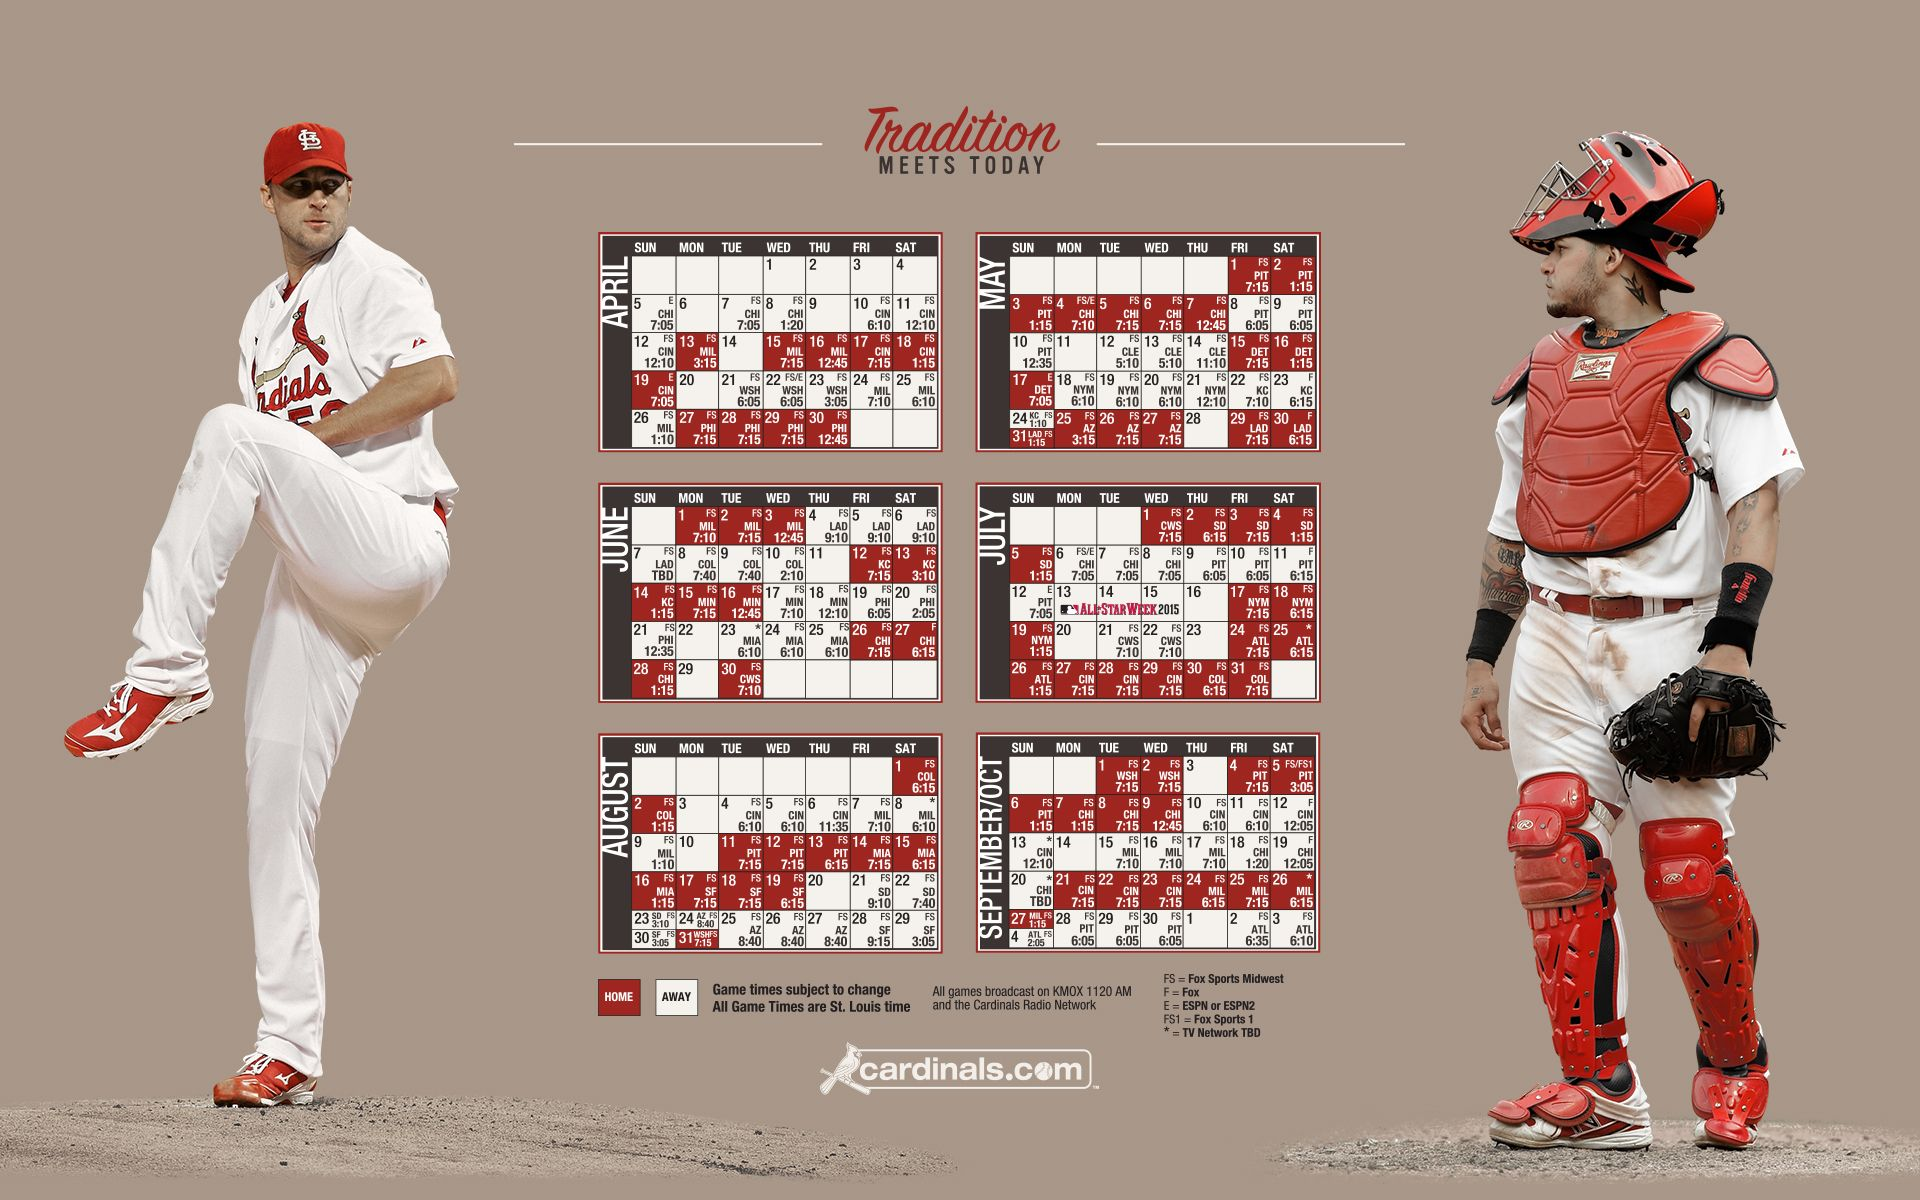 youth sports calendar template all the Calendar you need